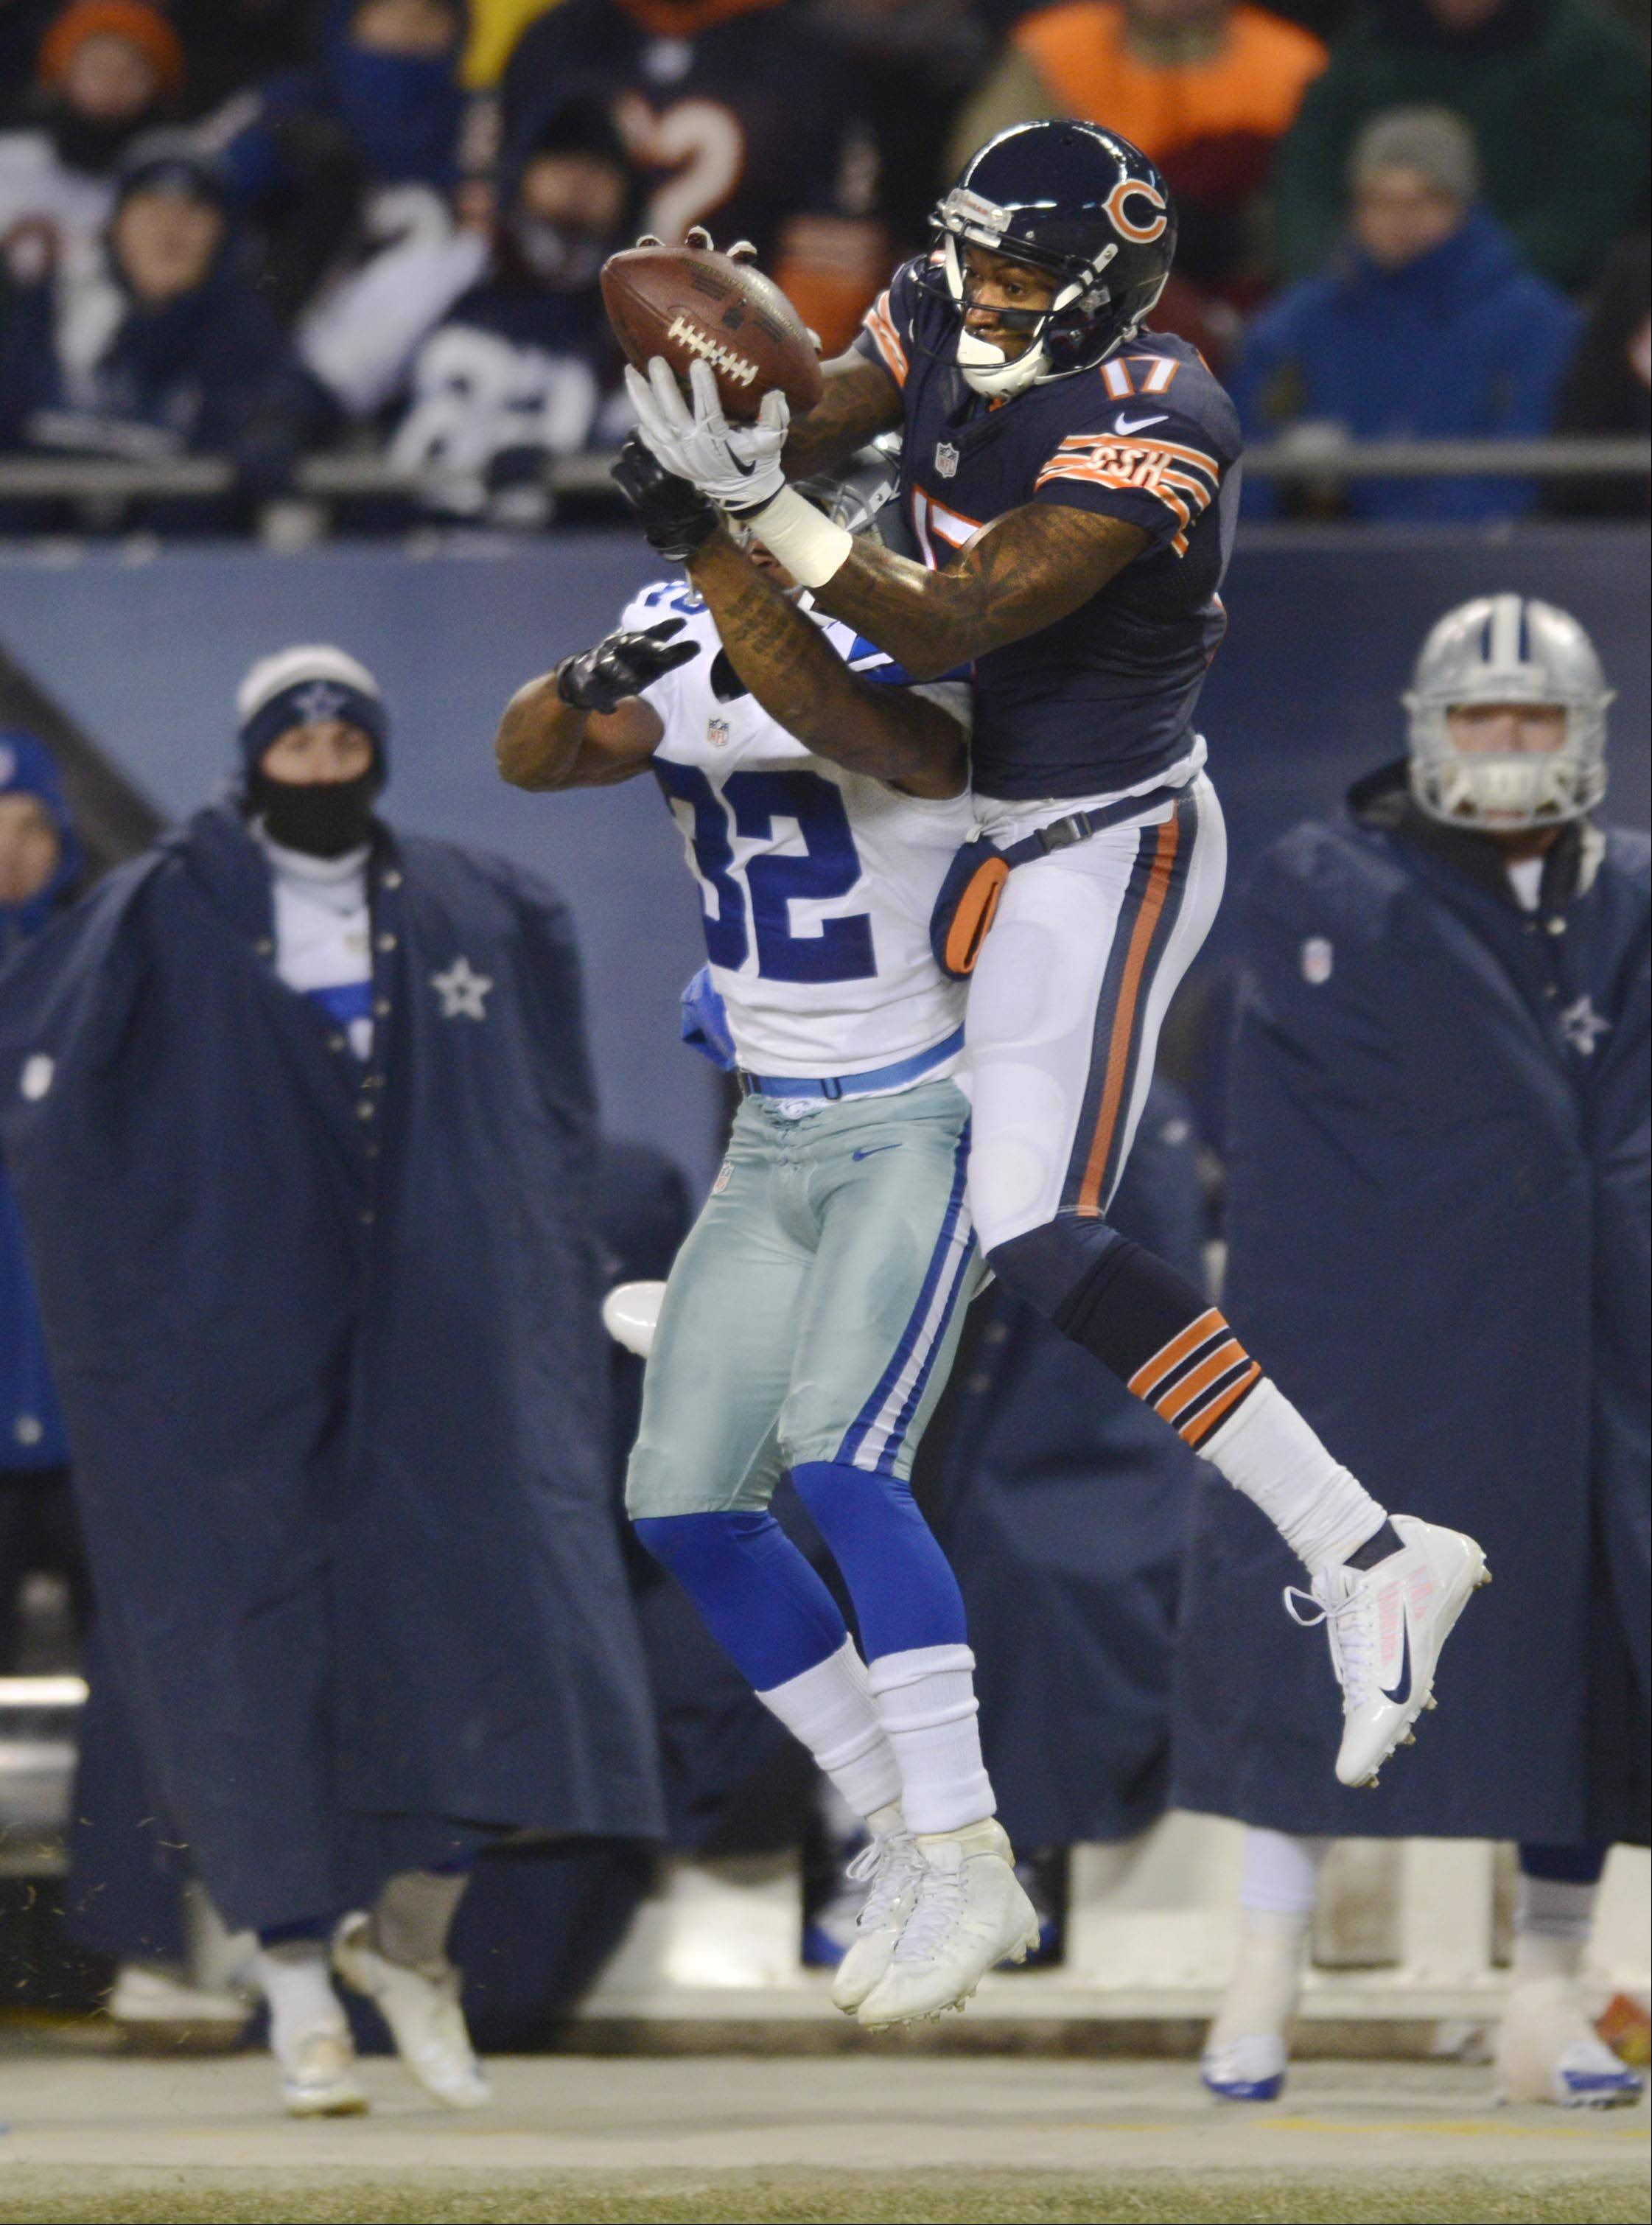 Chicago Bears wide receiver Alshon Jeffery makes a first-down catch against Dallas Cowboys cornerback Orlando Scandrick in the second quarter.